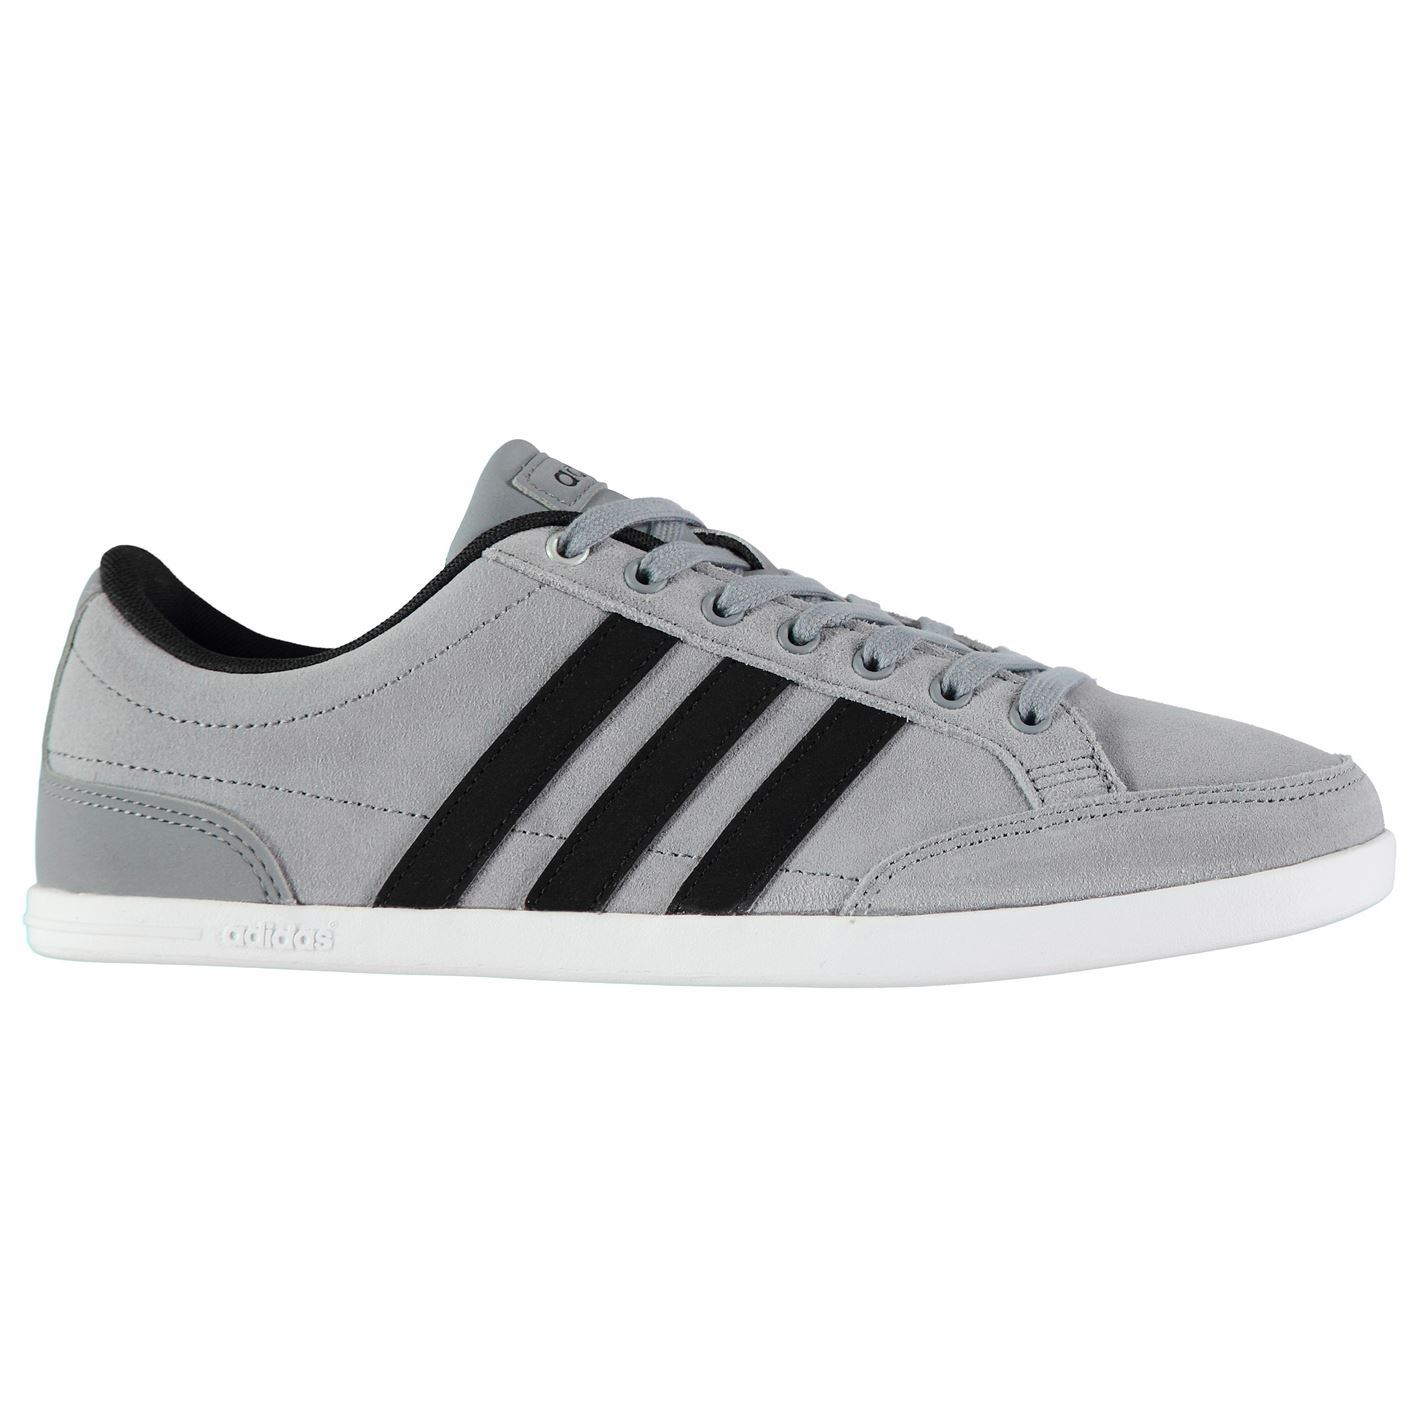 b80a9951aa8 The Mens adidas Caflaire Suede Trainers are perfect for any casual outfit